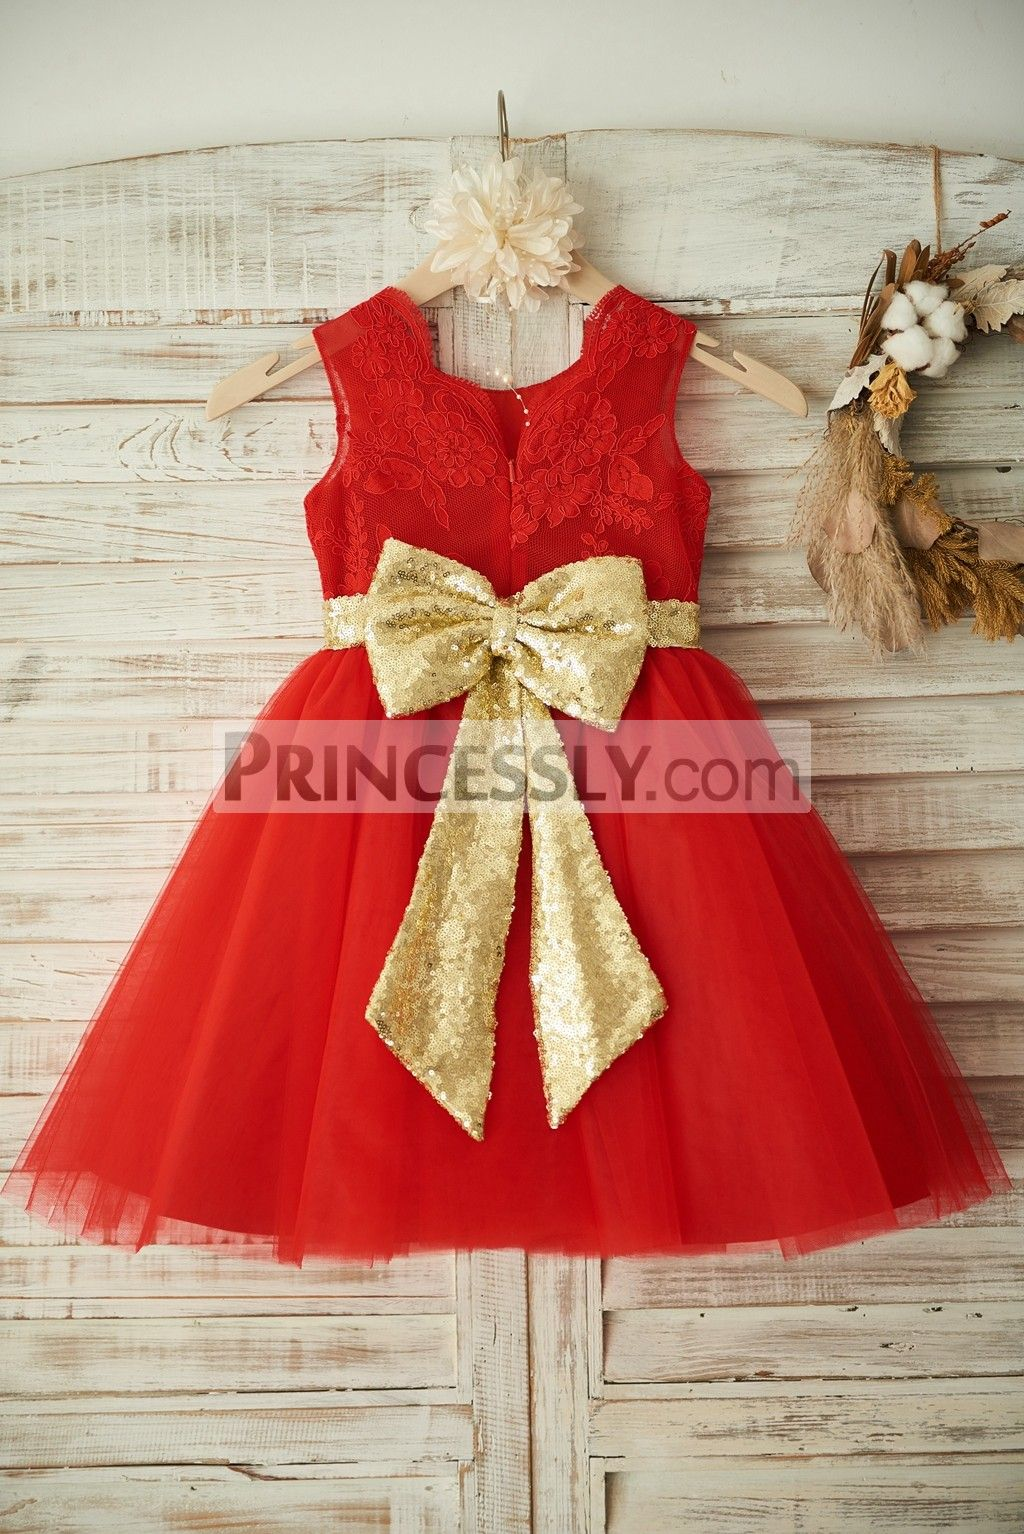 Princessly.com-K1003351-Red Lace Tulle Wedding Flower Girl Dress Christmas  Party Dress with Gold Sequin BeltBow-31 e5aa42d69aa4